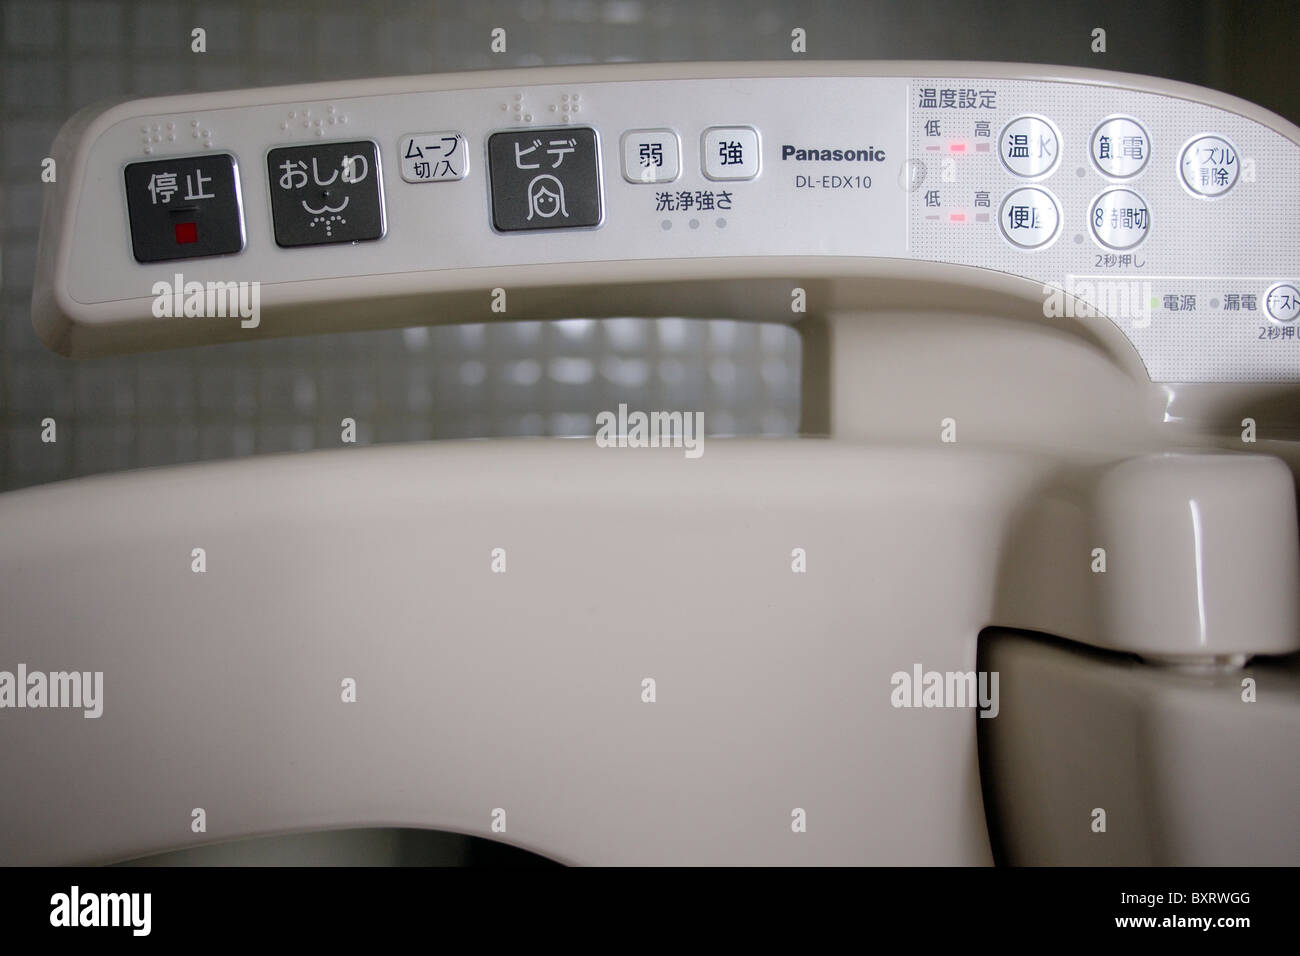 Hi-tech modern electronic Japanese toilet in Japan Asia - Stock Image